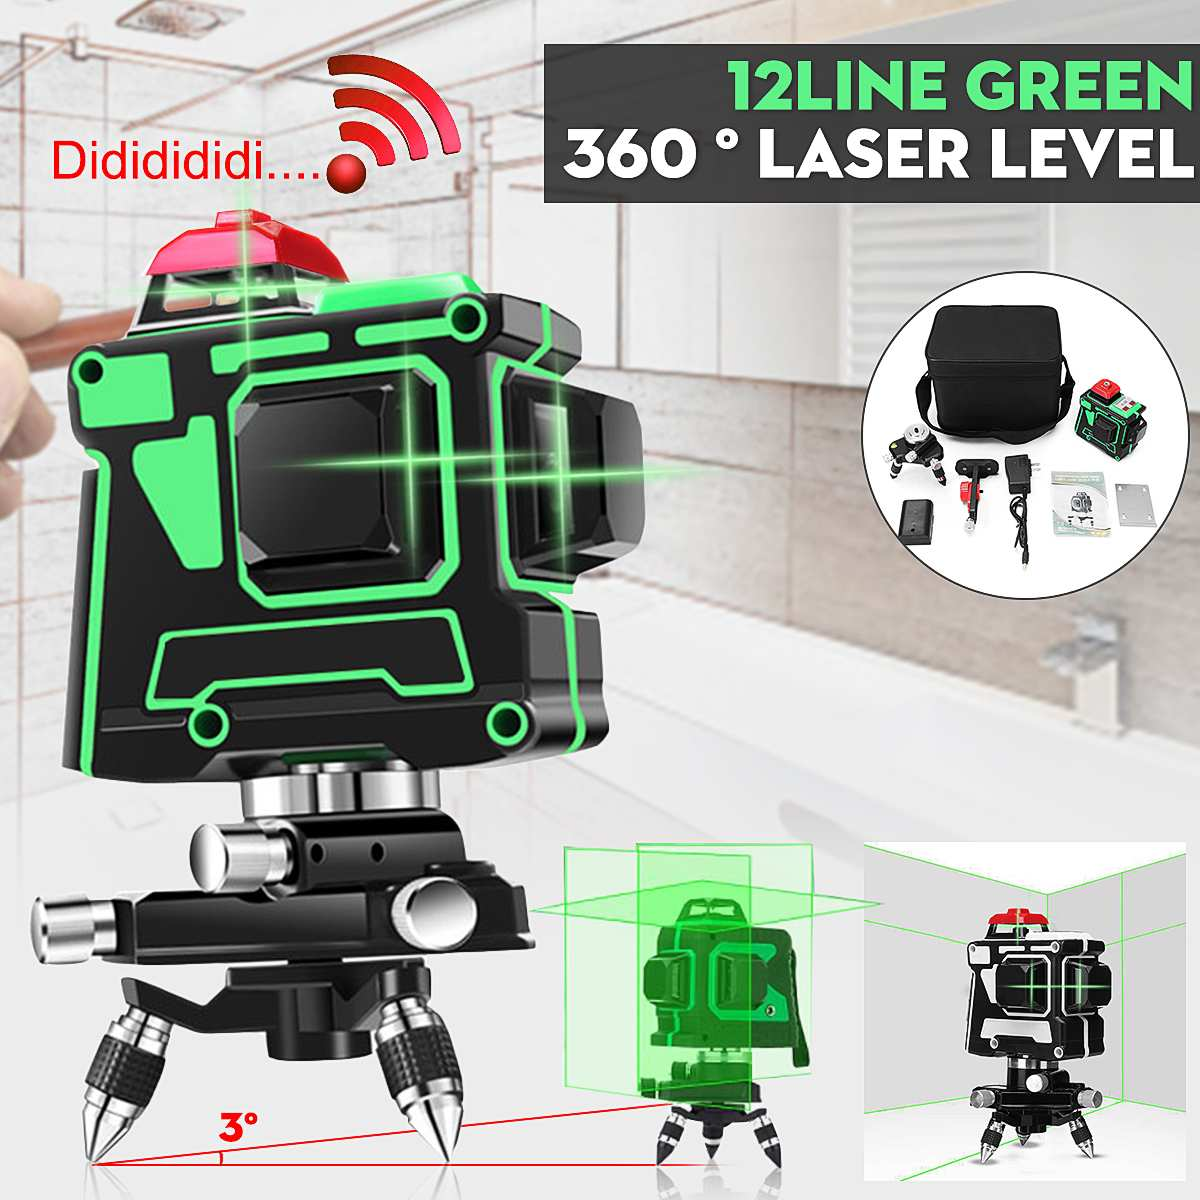 3D 12 Line Green/Blue Light Laser Level Self Leveling 360 Rotary Measure Cross With Tripod Base 360 Rotating Green/Blue 100-240V3D 12 Line Green/Blue Light Laser Level Self Leveling 360 Rotary Measure Cross With Tripod Base 360 Rotating Green/Blue 100-240V